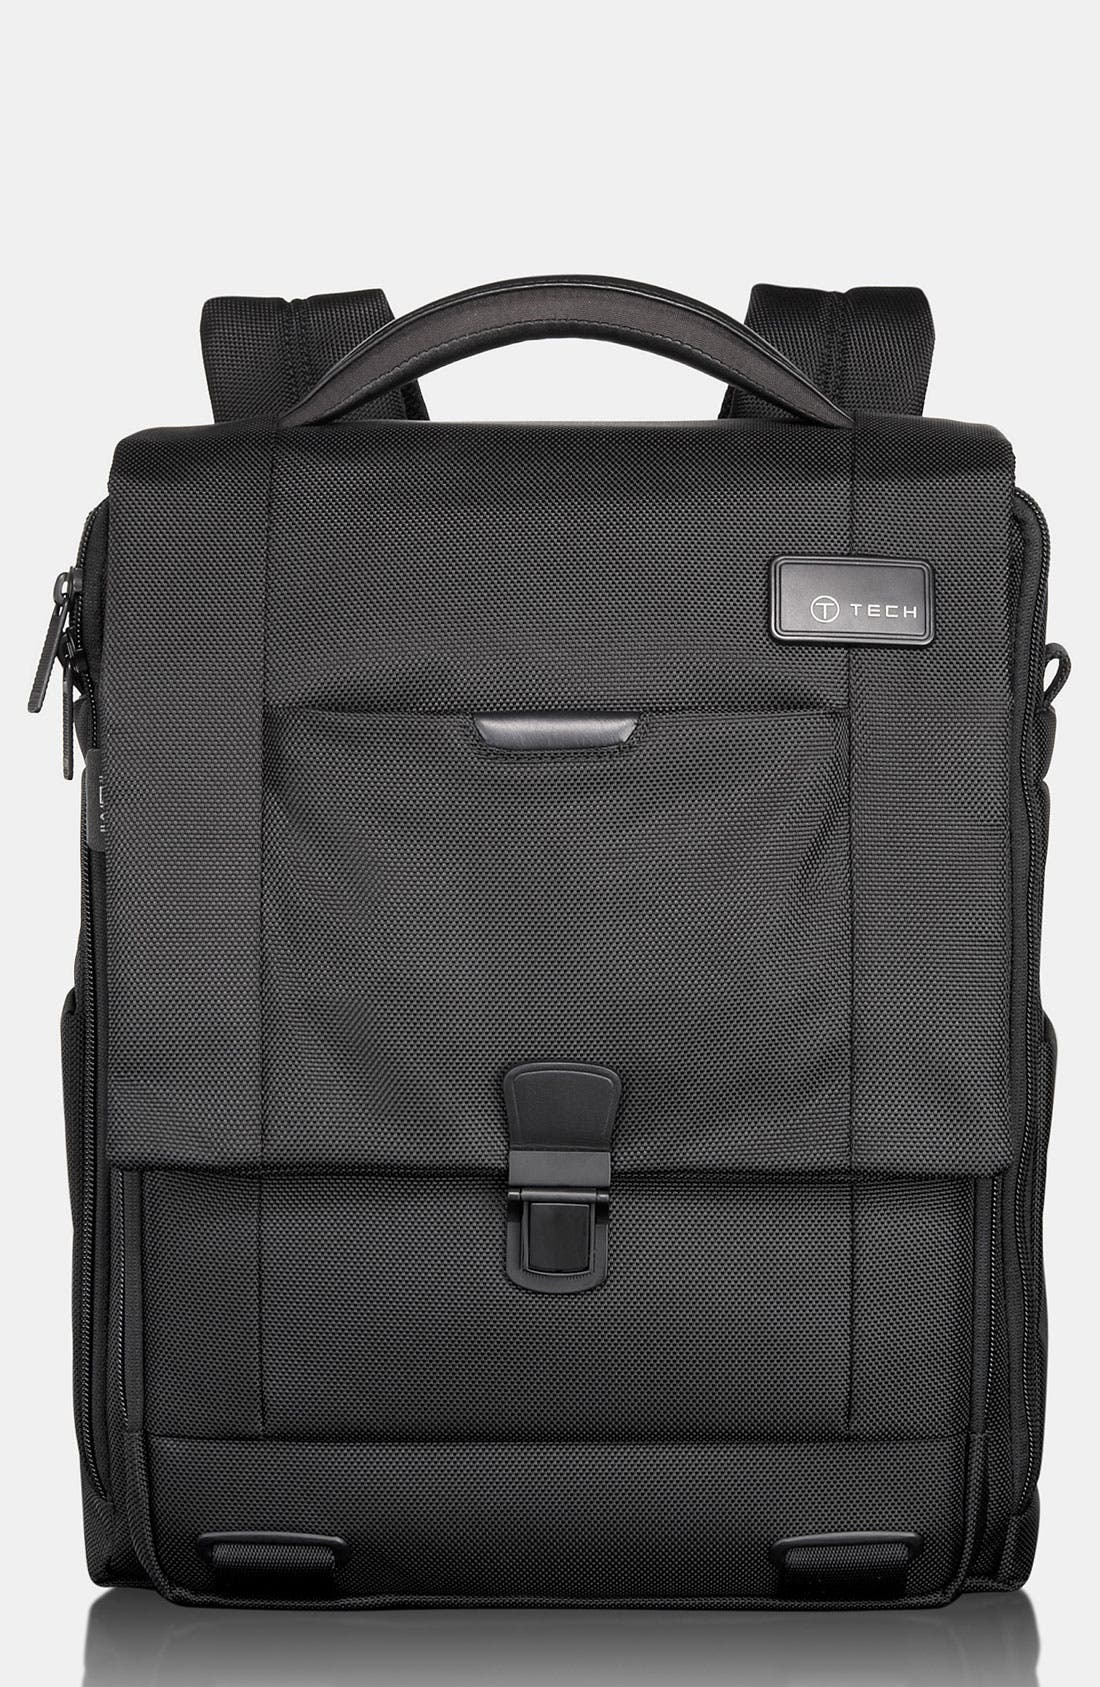 Main Image - Tumi 'T-Tech Network' Convertible Laptop Briefcase